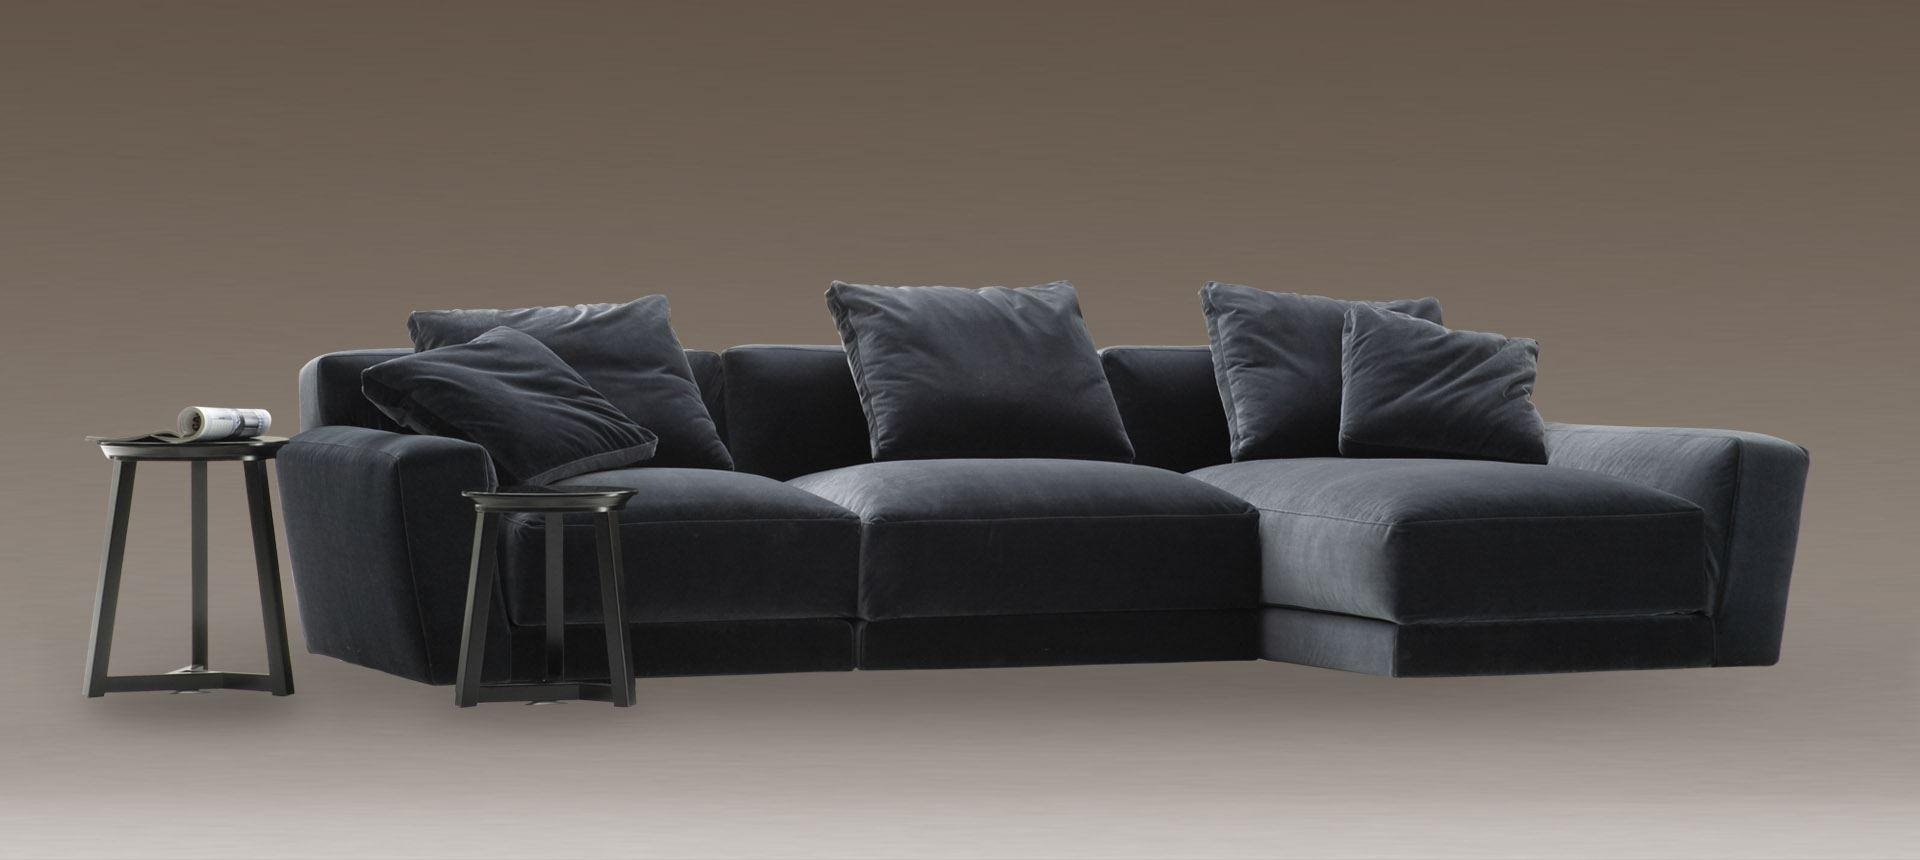 Camerich Contemporary Sofa Guarantee Modern Designer Furniture Intended For Camerich Sofas (Image 6 of 19)